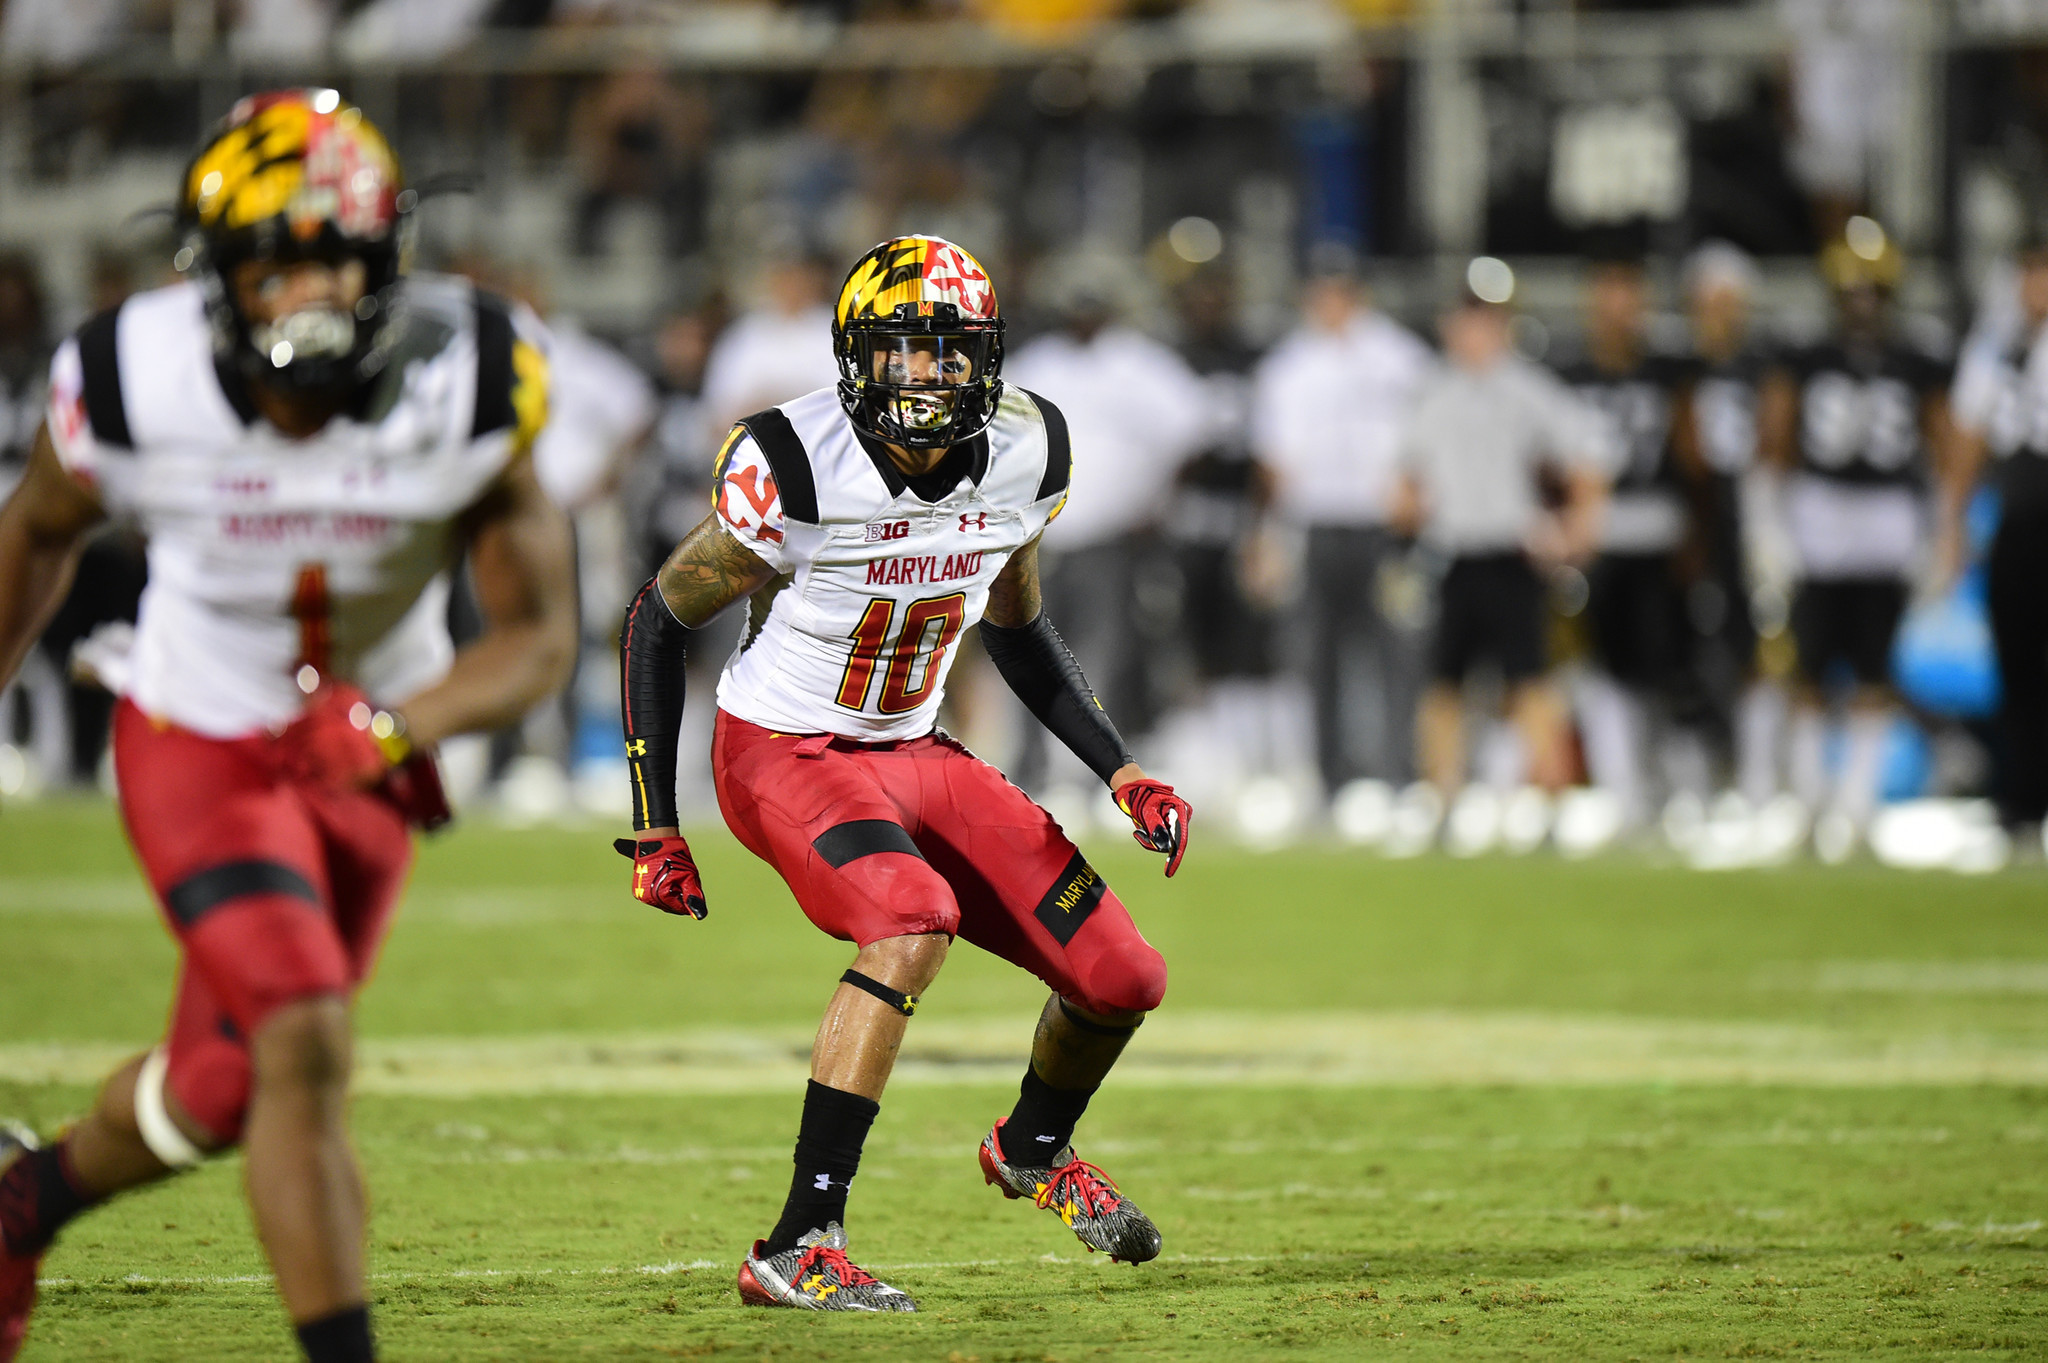 Bal-terps-josh-woods-aims-for-big-plays-at-safety-20160928